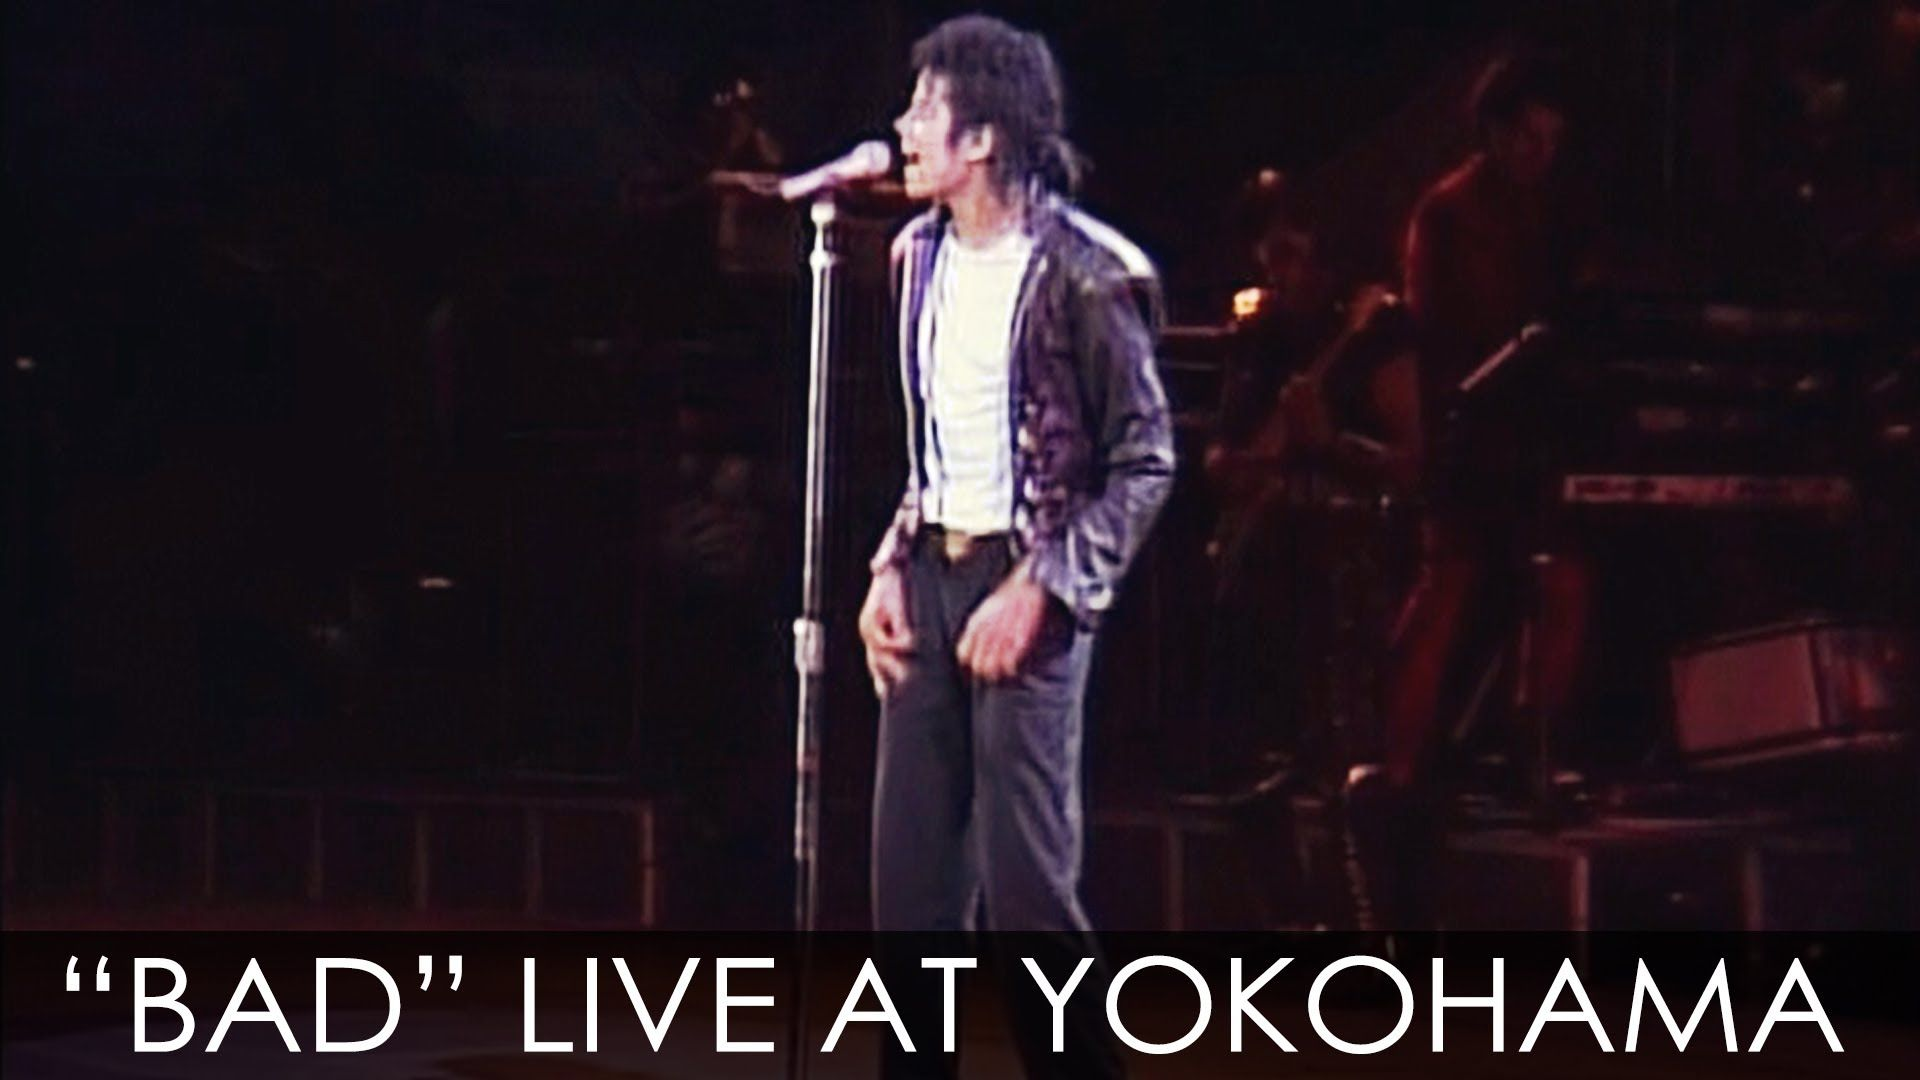 Live at Wembley July 16, 1988 is a live concert DVD by American recording artist Michael Jackson released on September 18, 2012. The DVD was included with th...